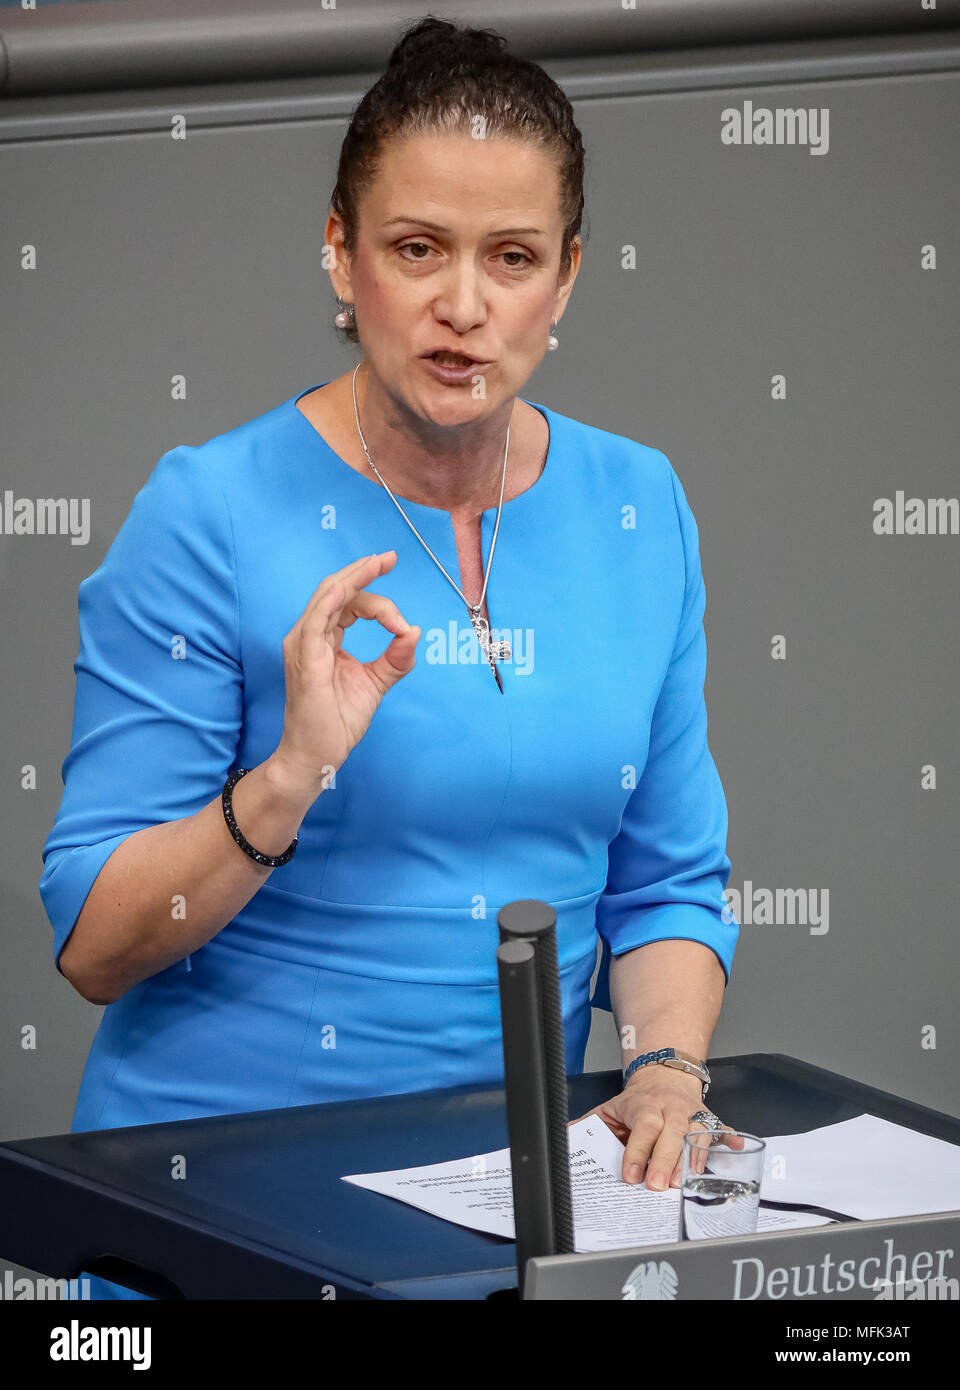 26 April 2018 Germany Berlin Nicole Hoechst Alternative For Germany Speaks During A Meeting In The Plenary Hall Of The Bundestag Parliament The Parliament Debates Over Israel On The Occasion Of The